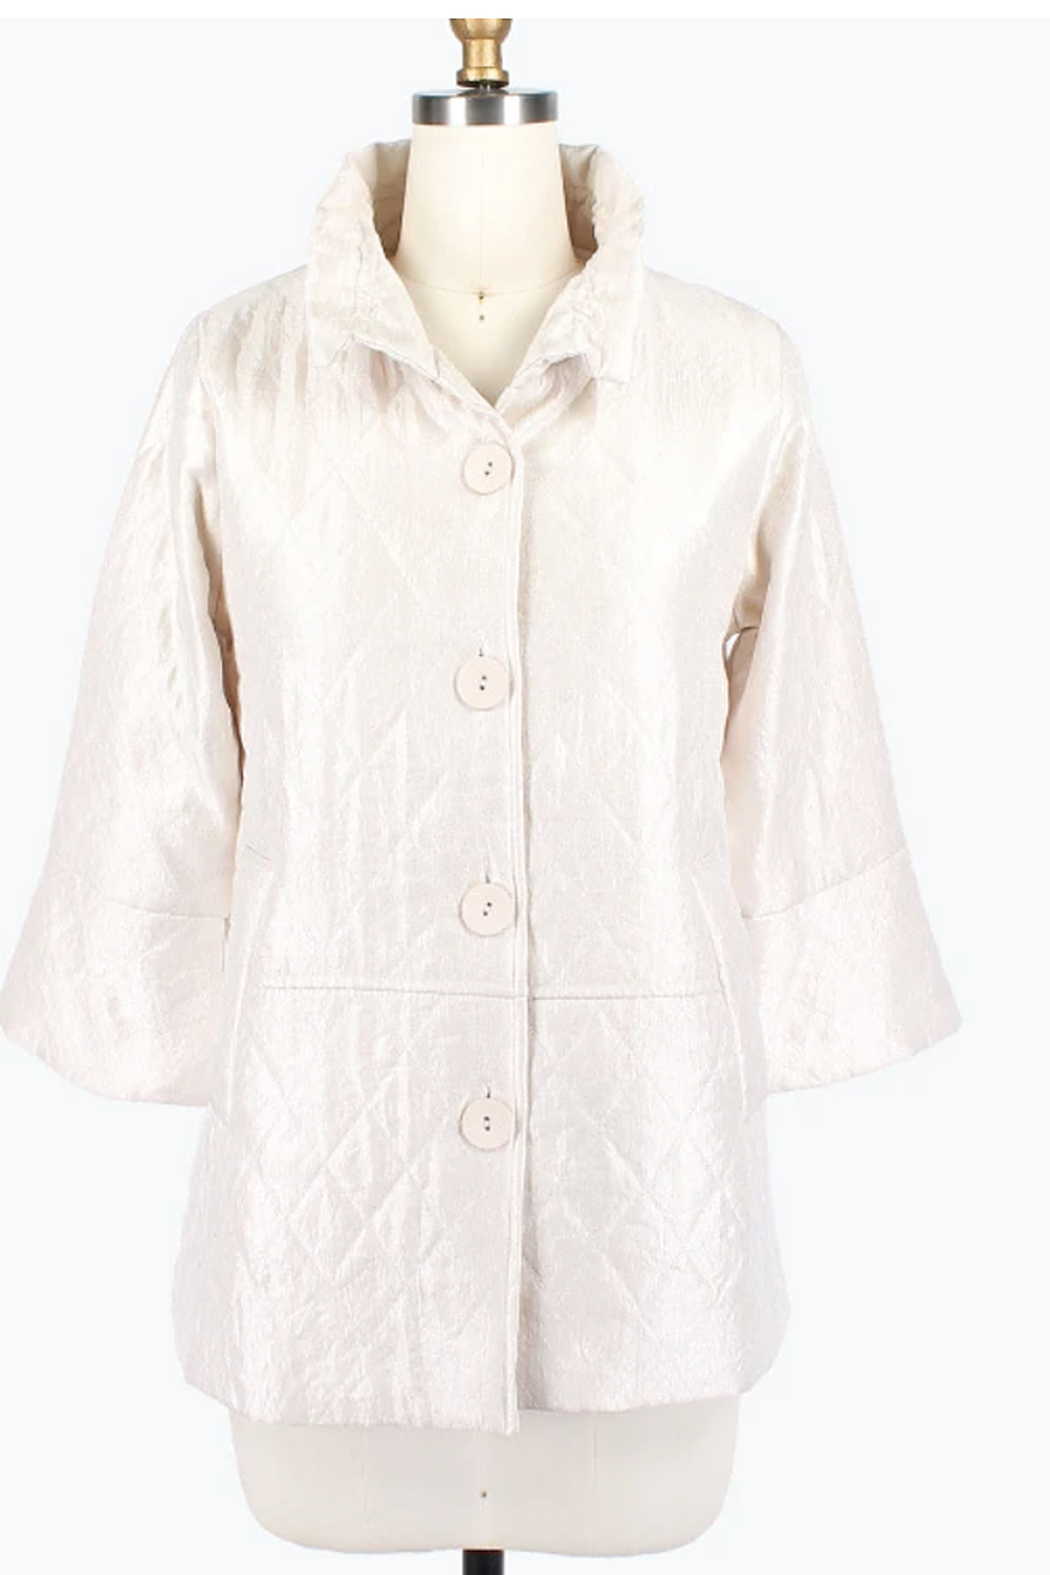 Damee Pearl White Quilted Jacket - Main Image